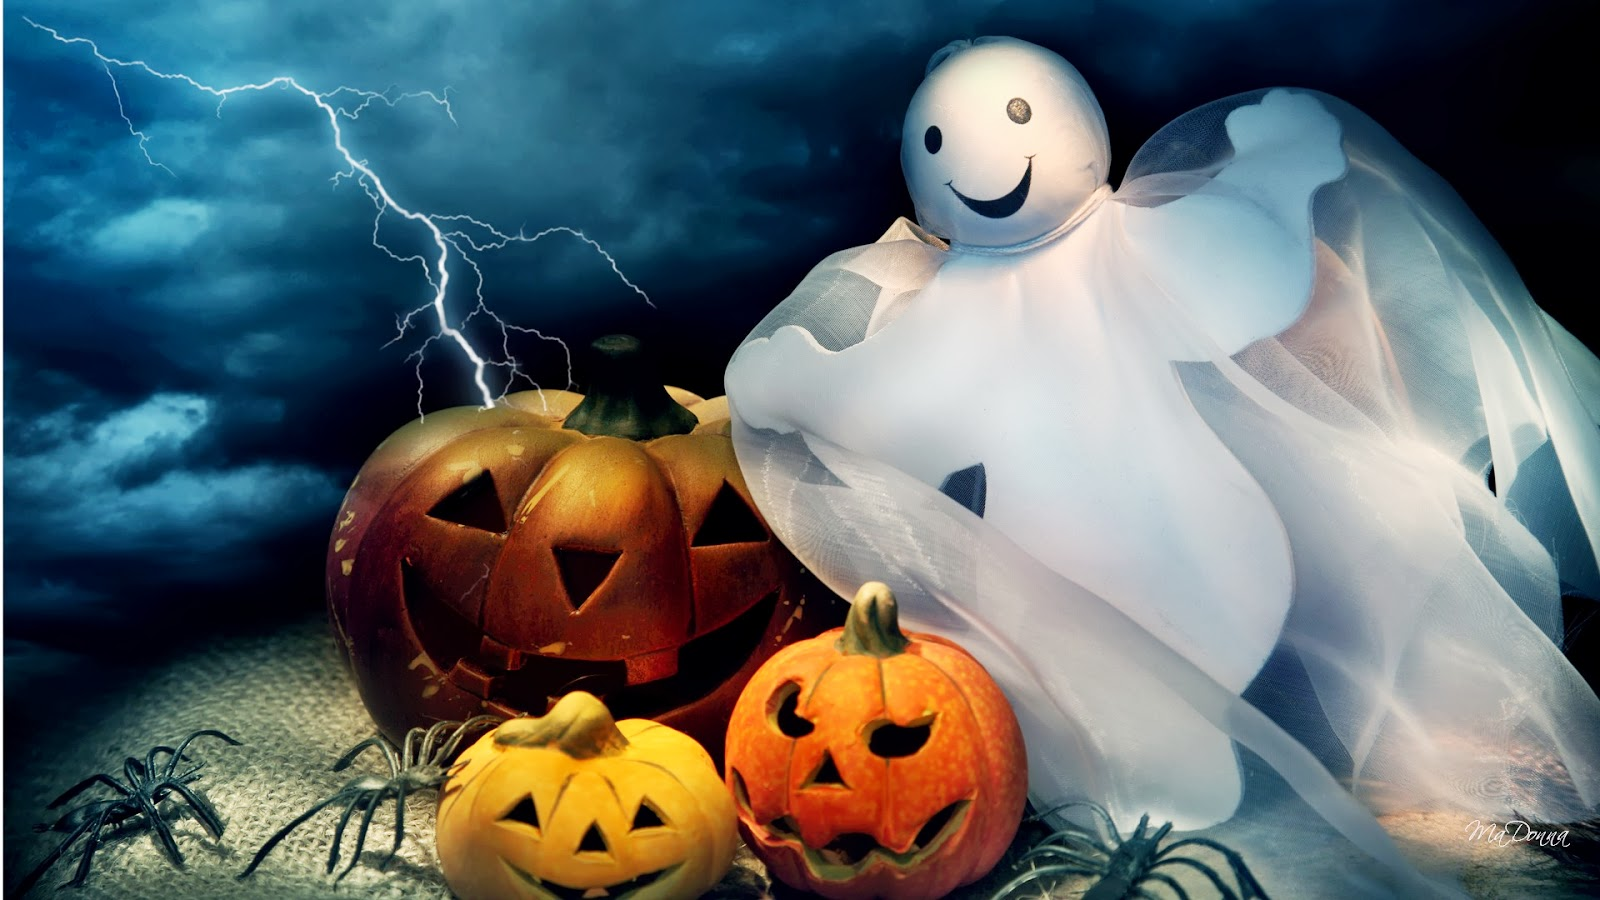 Free Desktop Wallpaper: Halloween Wallpaper Backgrounds